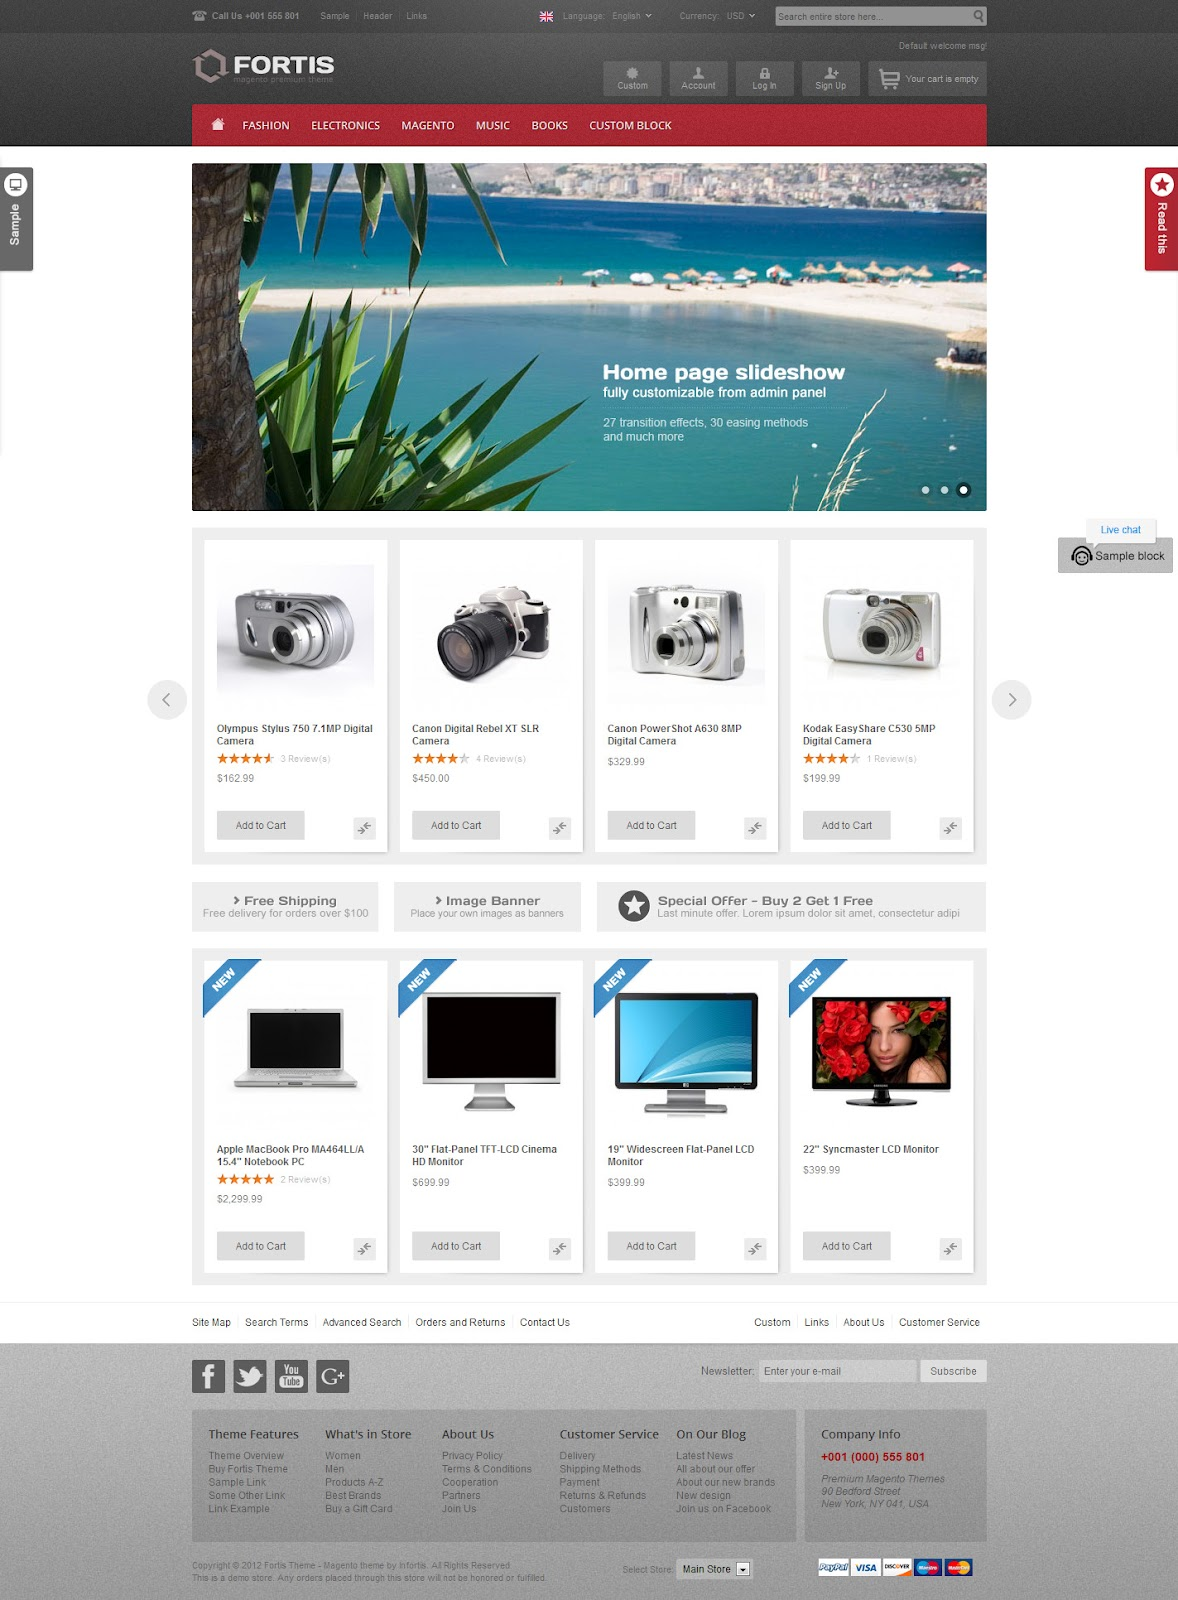 Free-Premium-eCommerce-flexible-Magento-Template